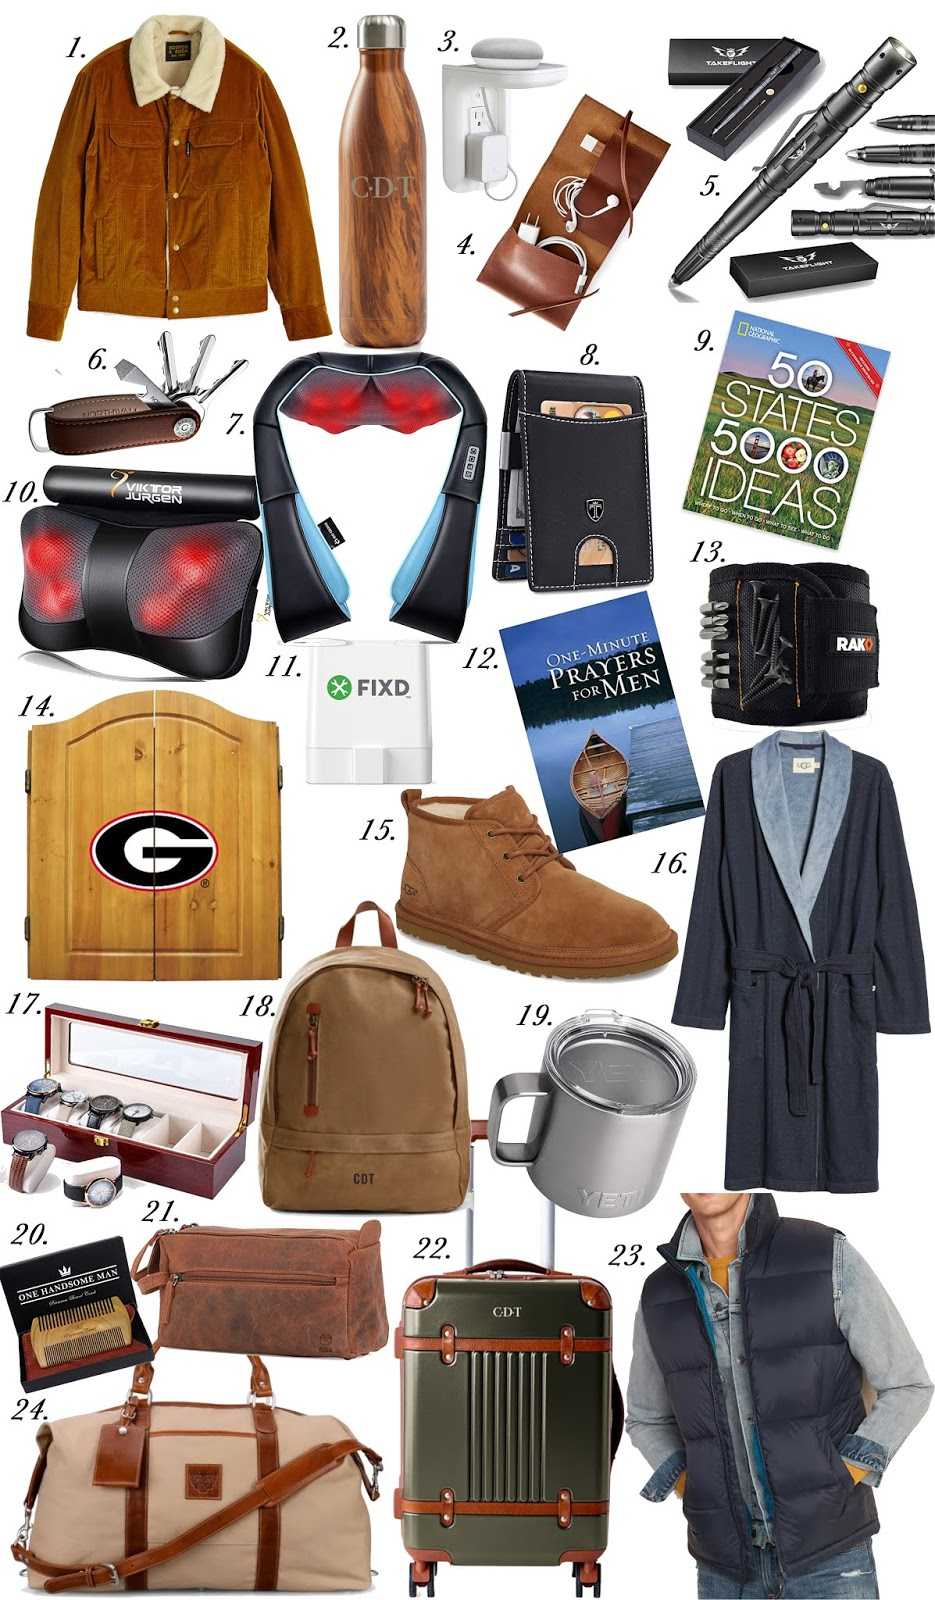 50 Gift Ideas for Men for Every Guy on your list - The Traveler, the chef, the griller, the organizer, neat men's gift ideas - Something Delightful Blog